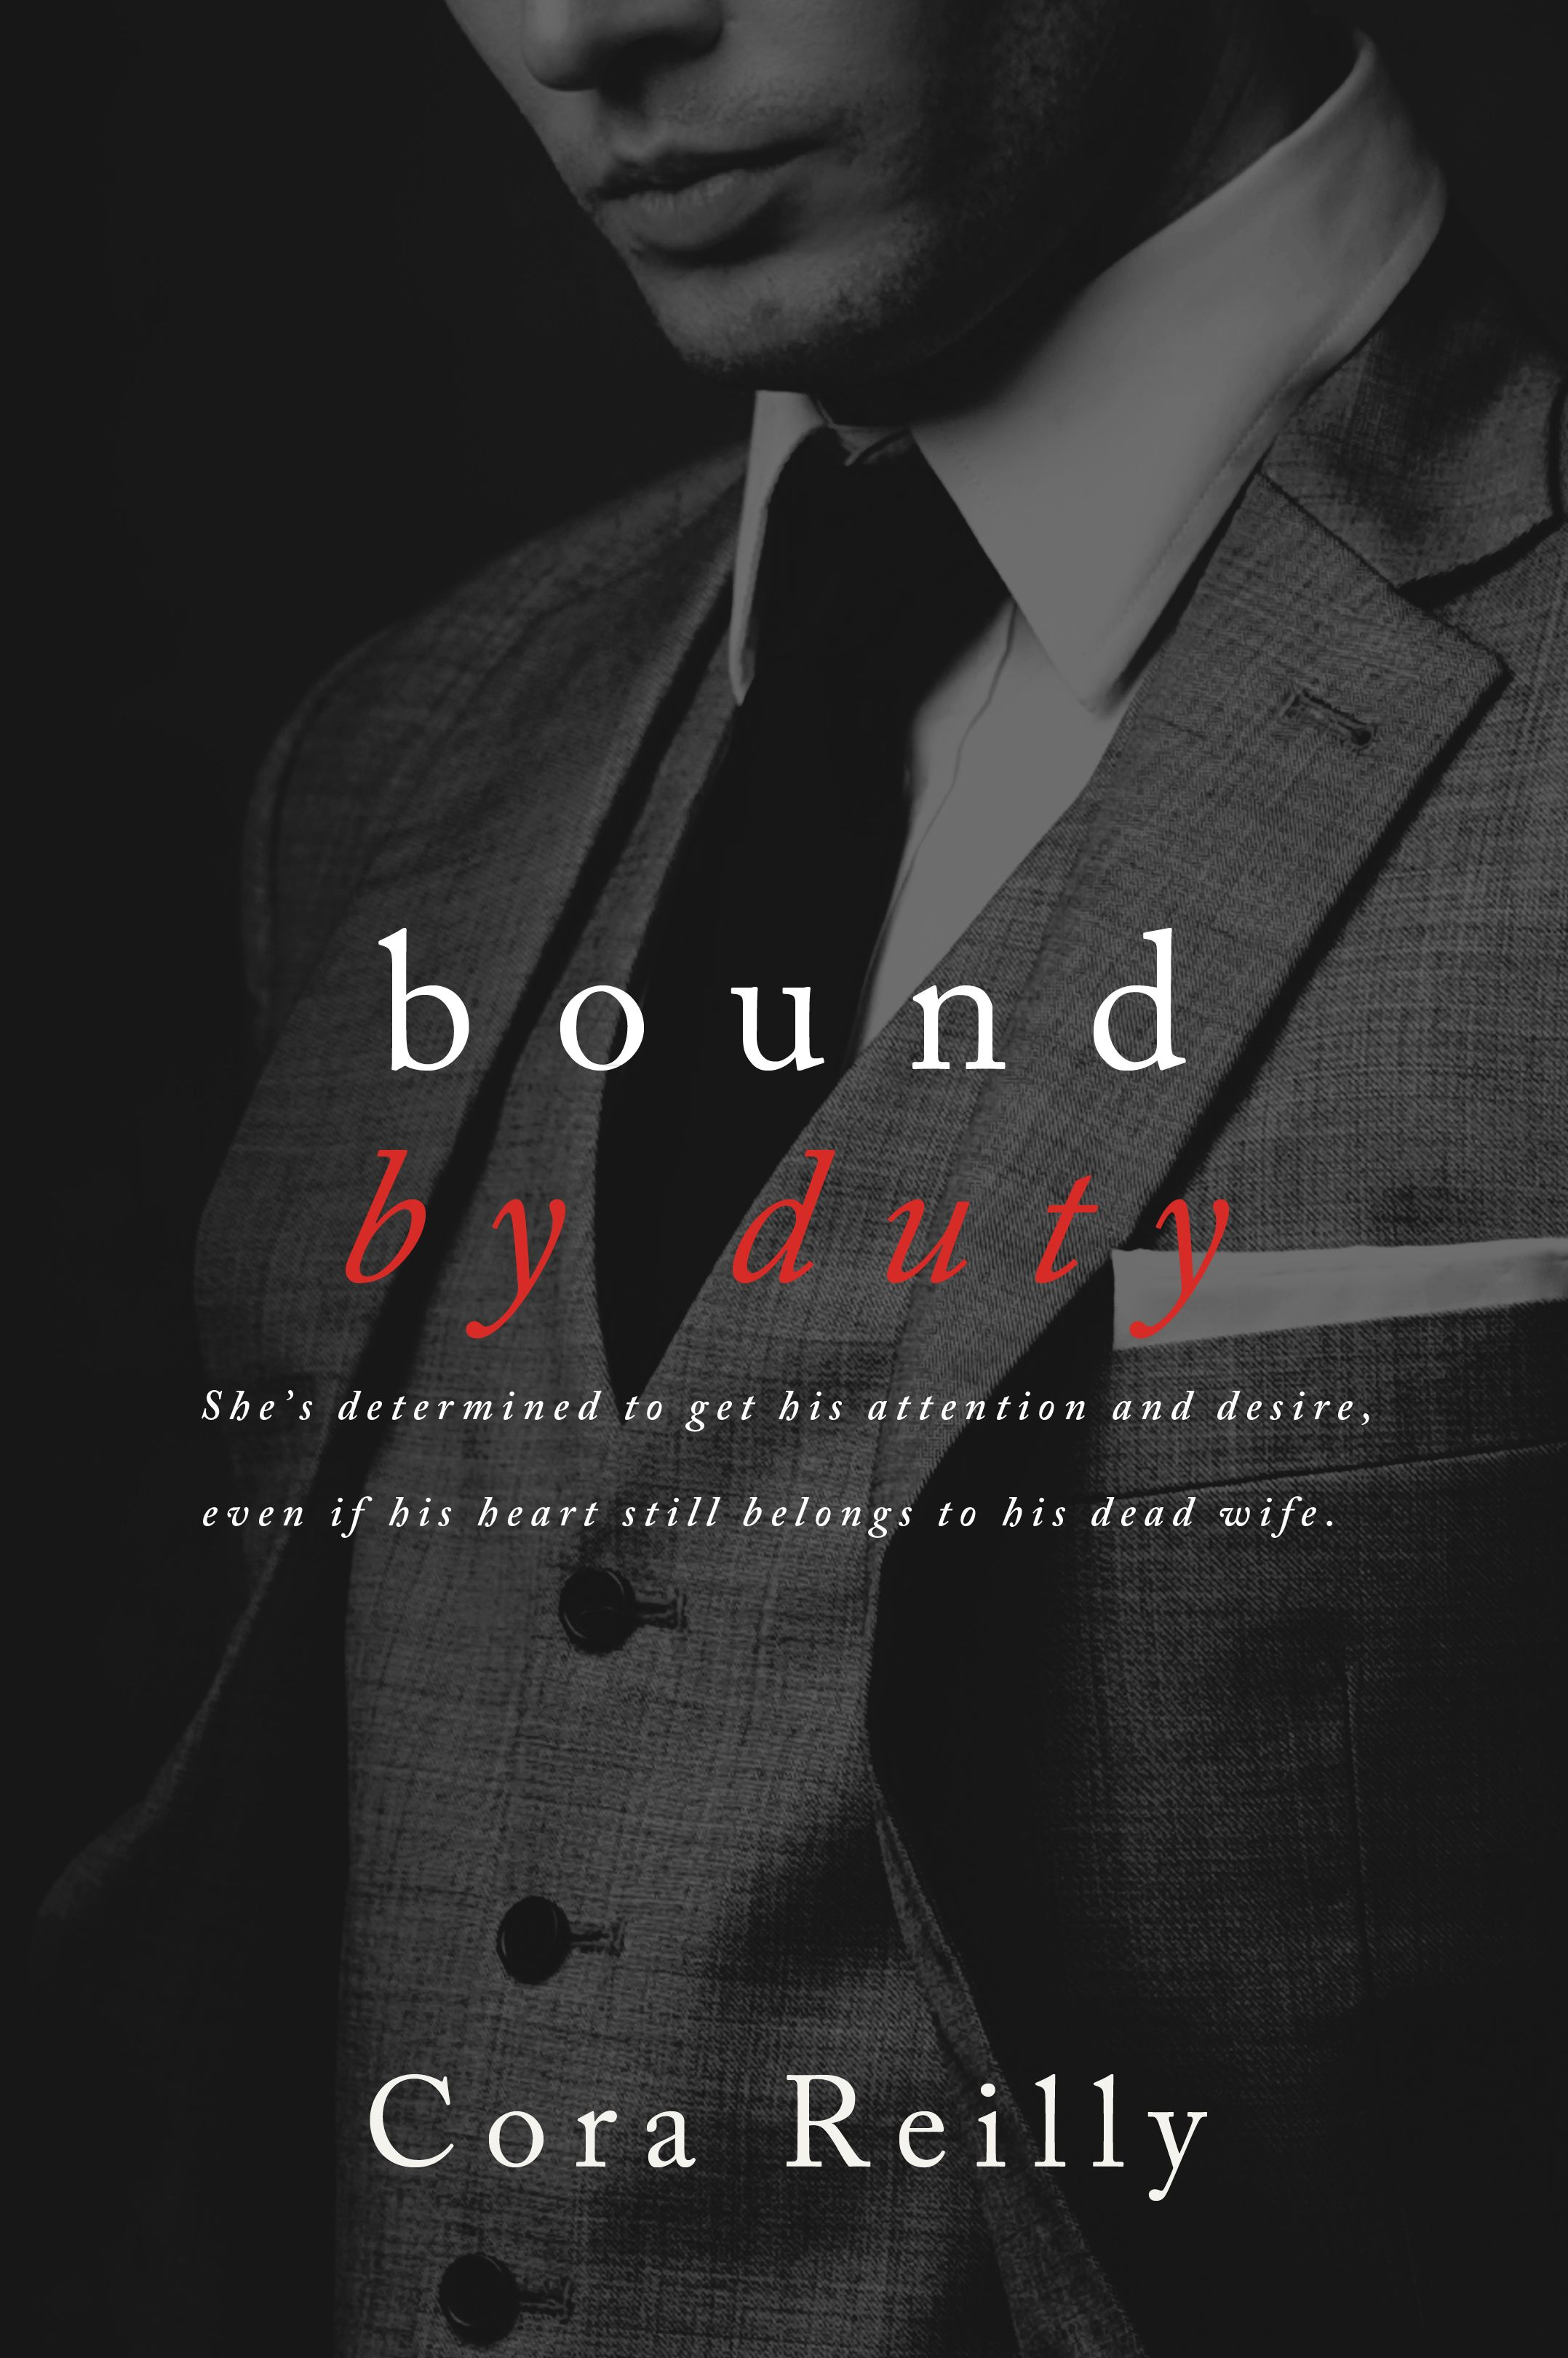 Bound by duty cover reveal rafflecopter good books